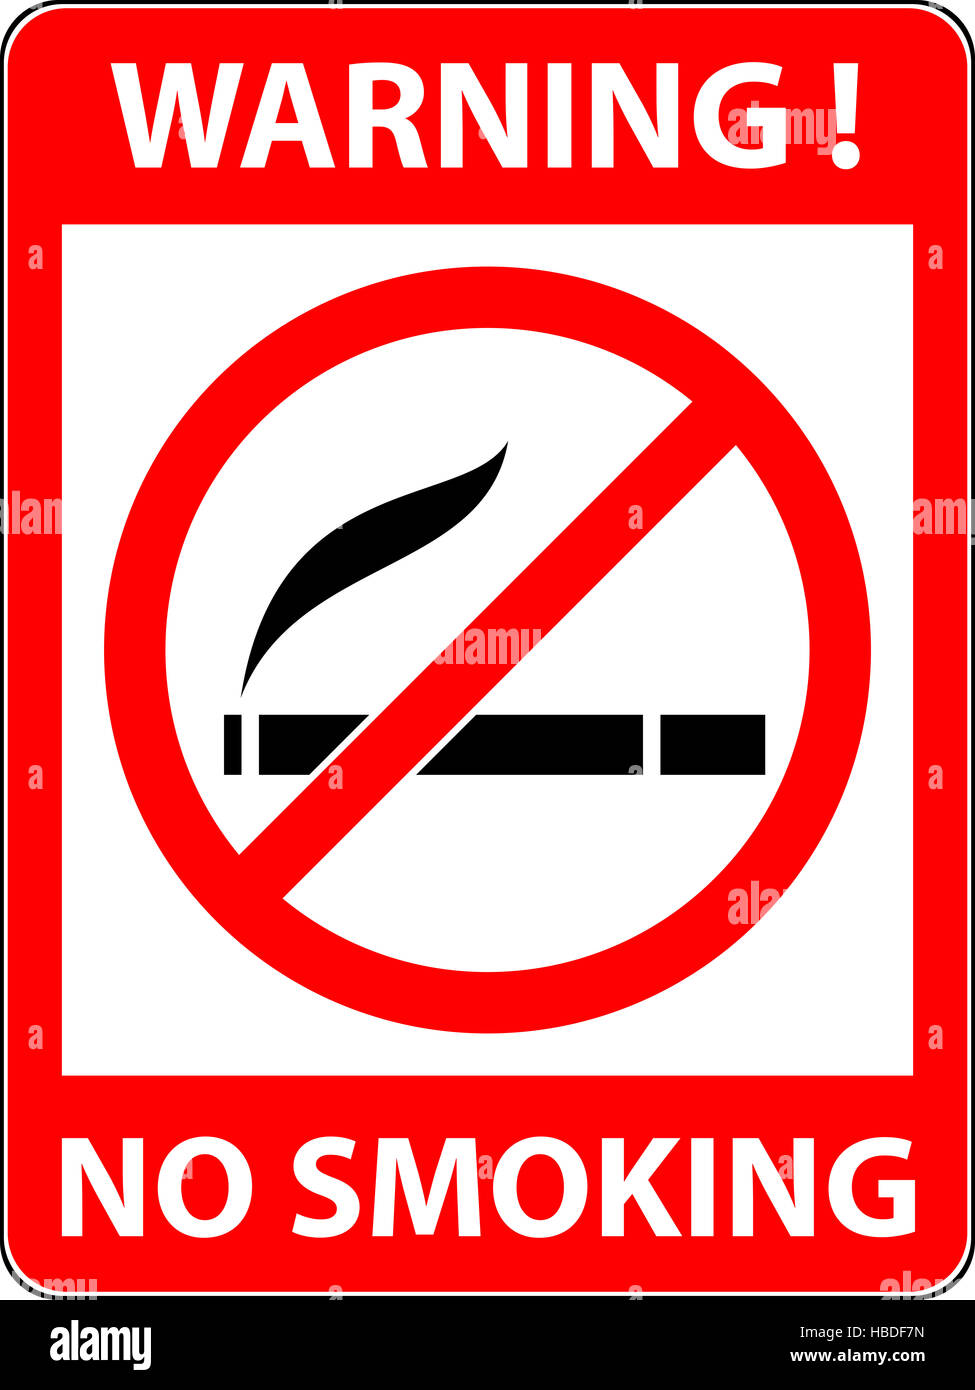 No smoking cigarette prohibited symbol stock photo 127531145 alamy no smoking cigarette prohibited symbol biocorpaavc Image collections